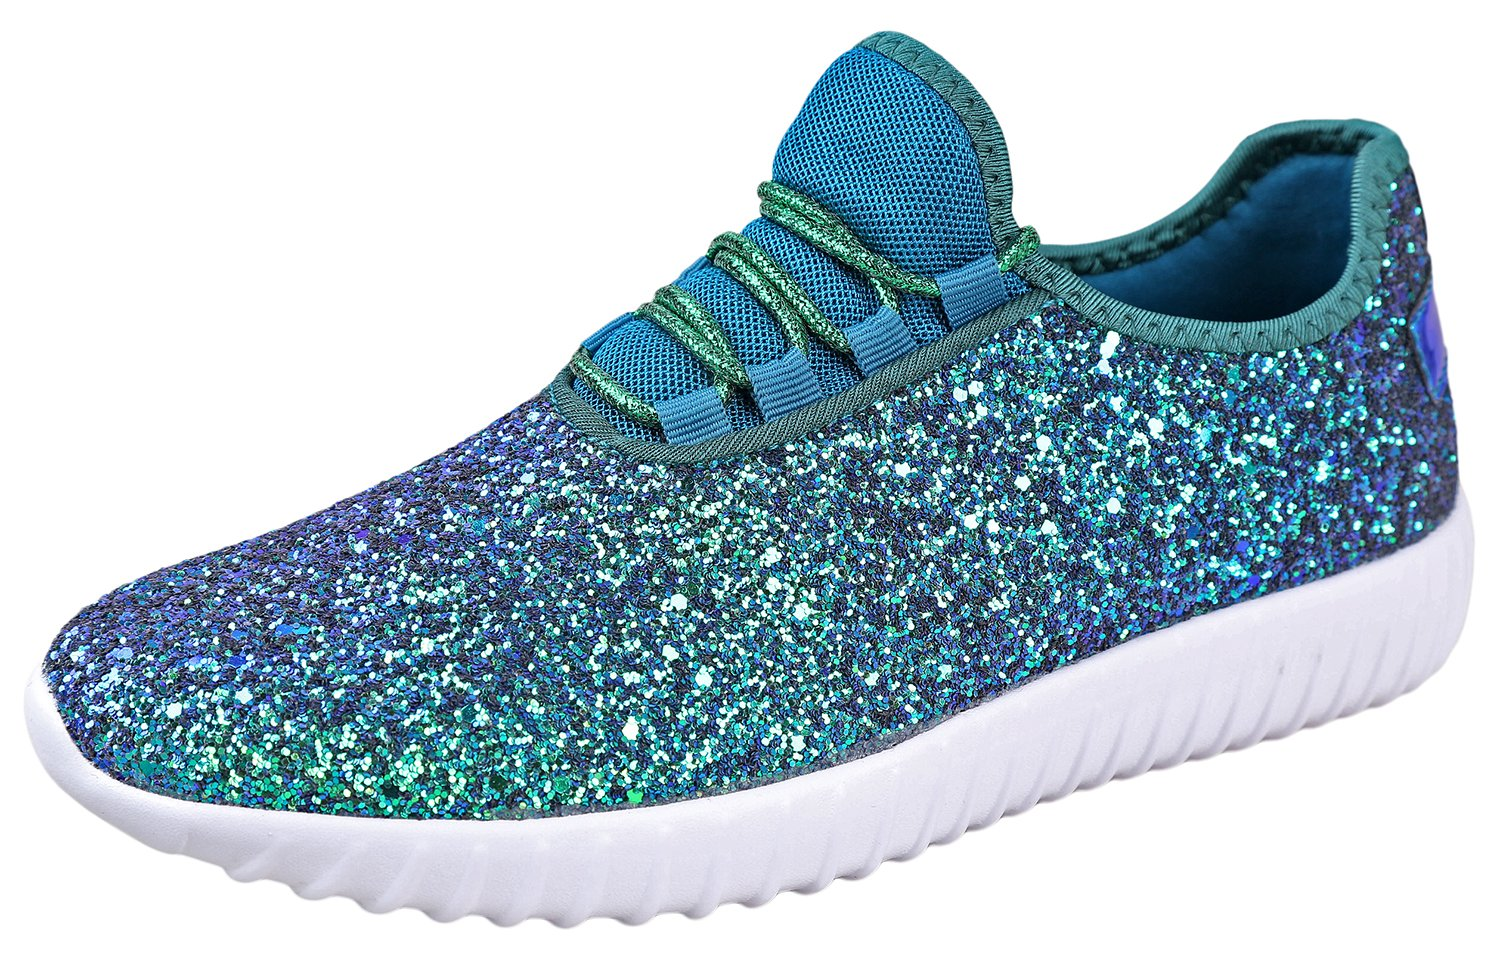 Foxy Grey Allison Womens Sneakers | Glitter Shoes for Women | Fashion Sneakers | Sparkly Shoes for Women | Casual Shoes B07D95QYCX 6 B(M) US|Green